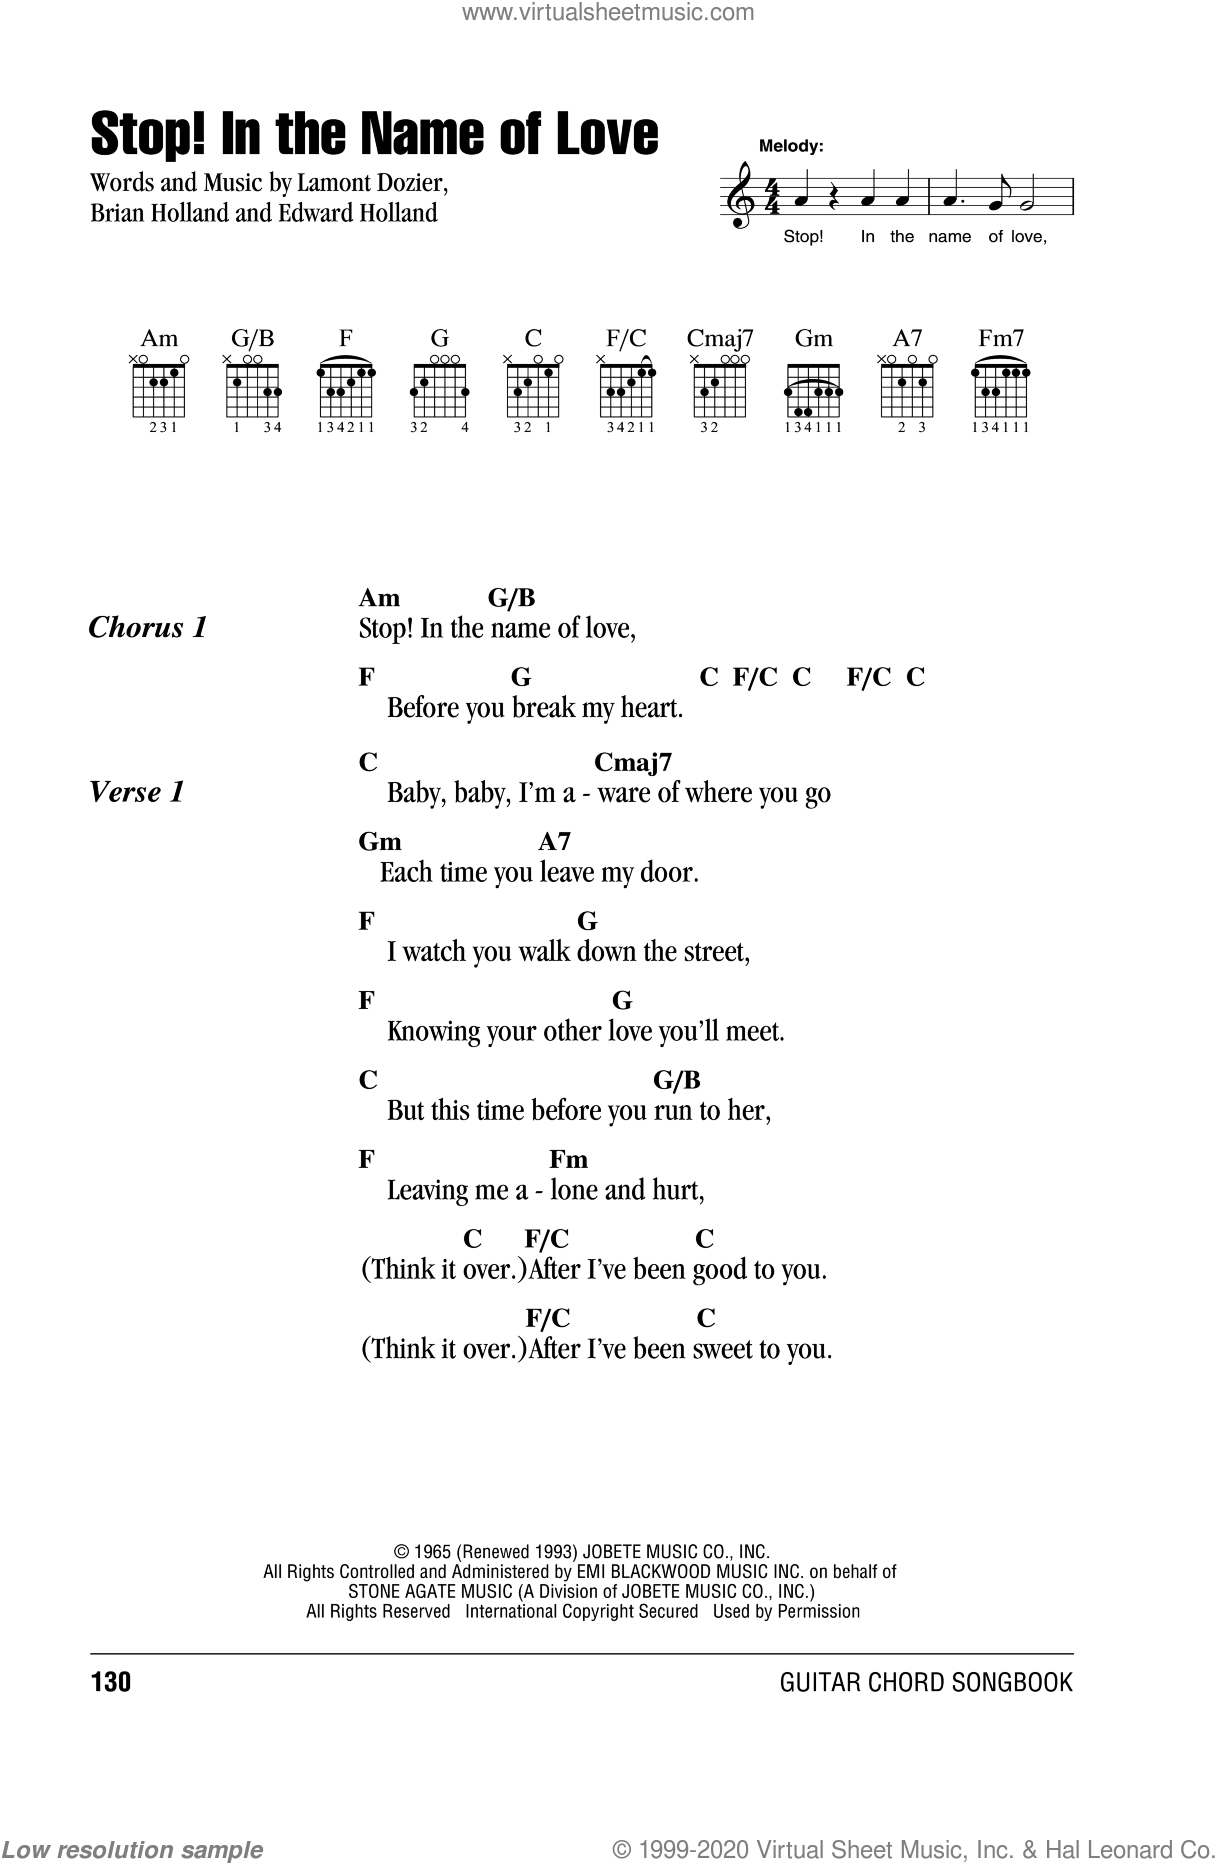 Stop! In The Name Of Love sheet music for guitar (chords) by The Supremes, Diana Ross, Brian Holland, Eddie Holland and Lamont Dozier, intermediate skill level